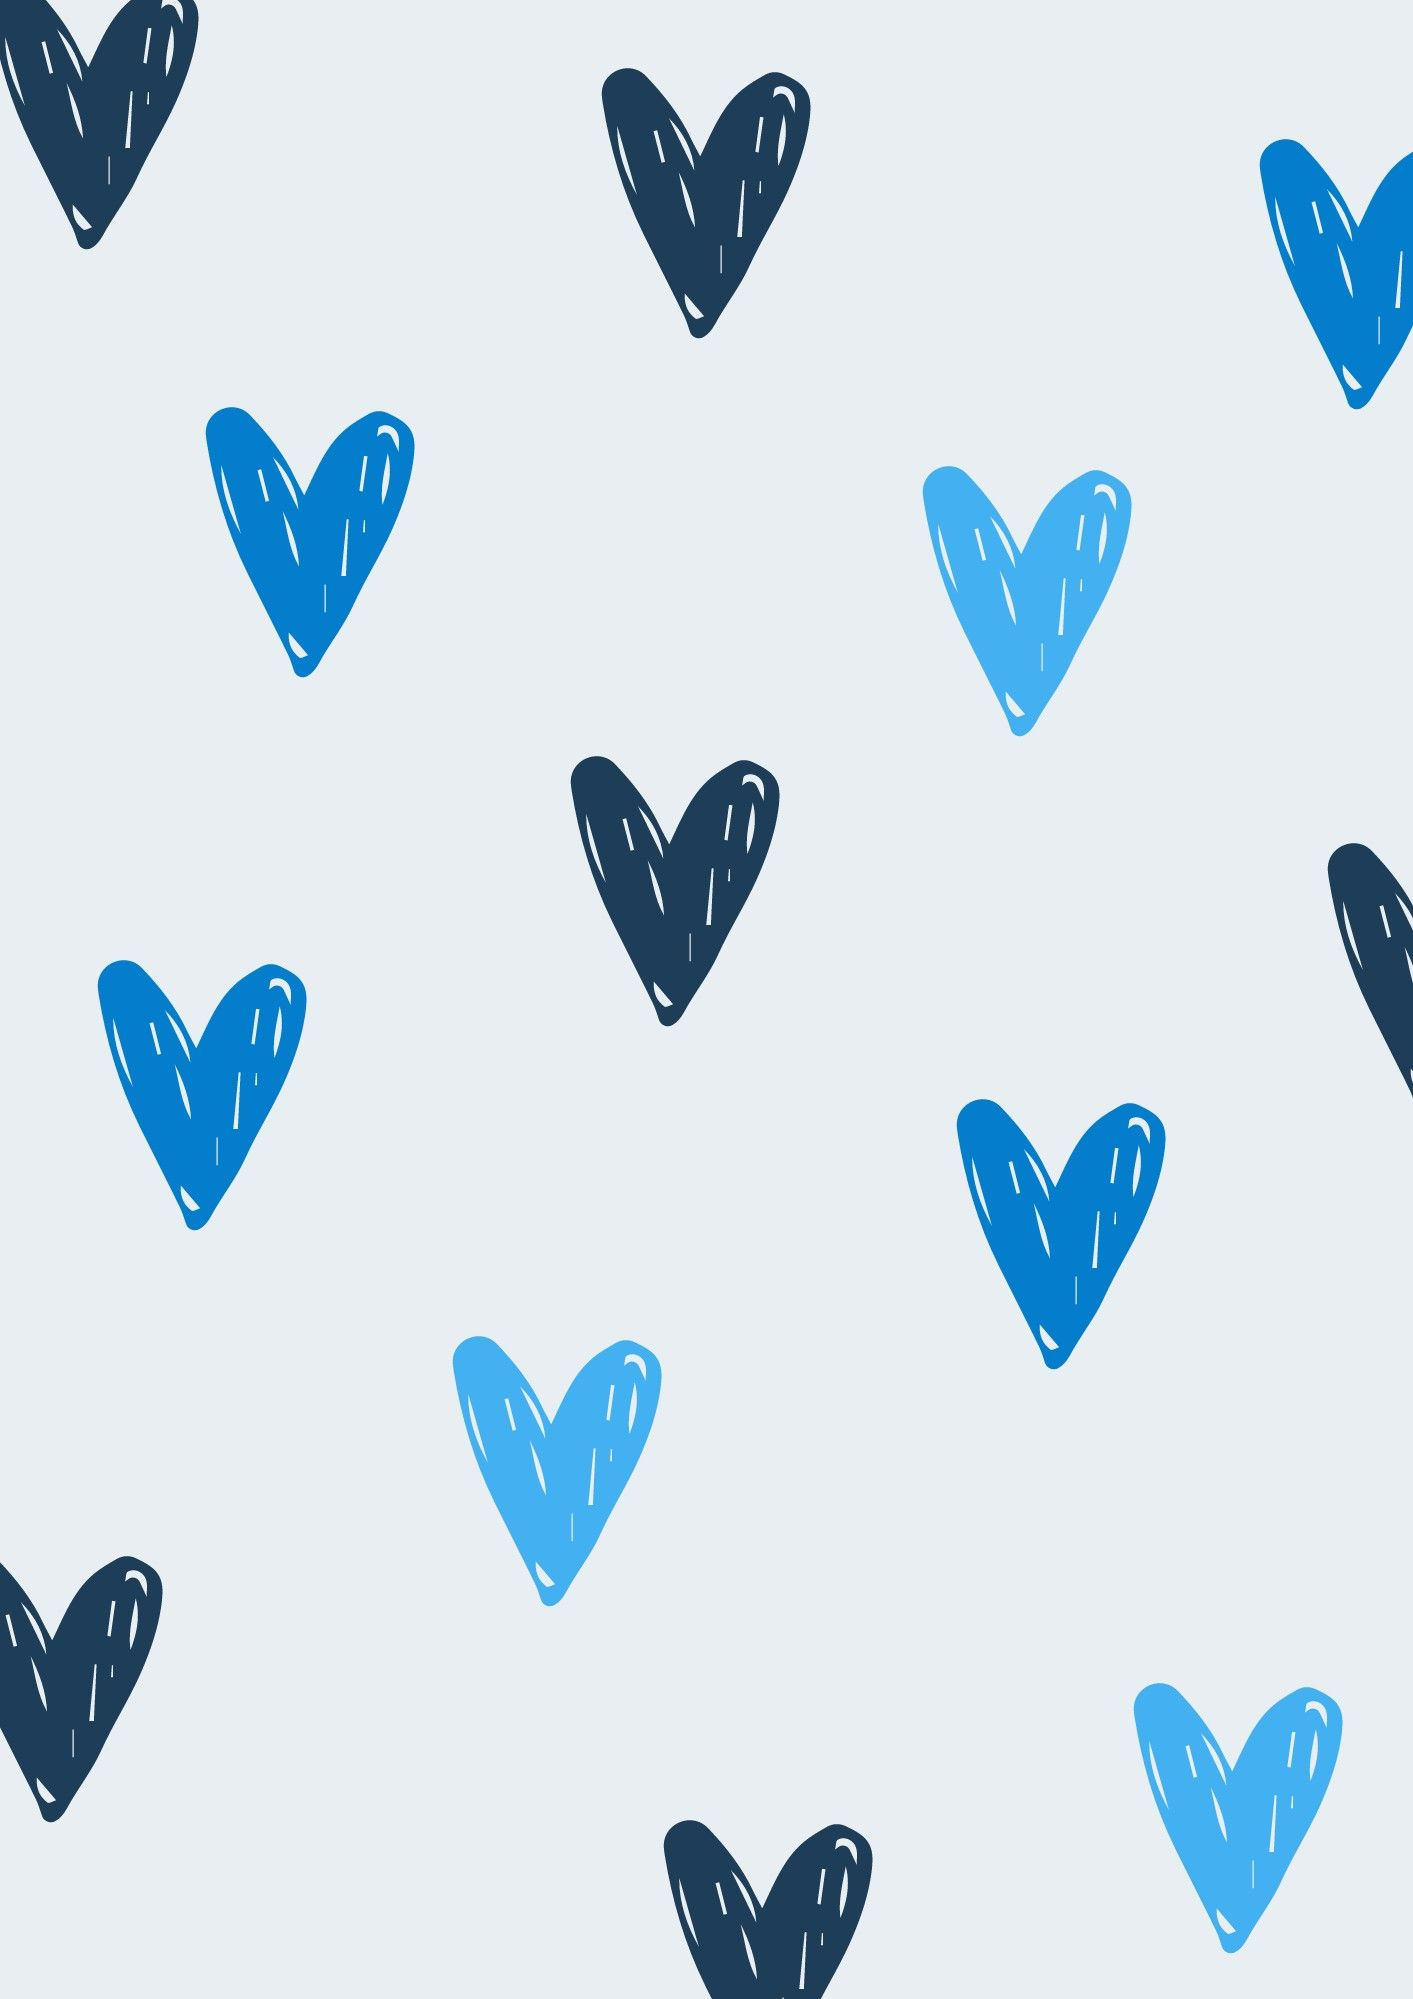 W A L L P A P E R Hearts Heart Wallpaper Pretty Wallpapers Backgrounds Cool Backgrounds For Iphone